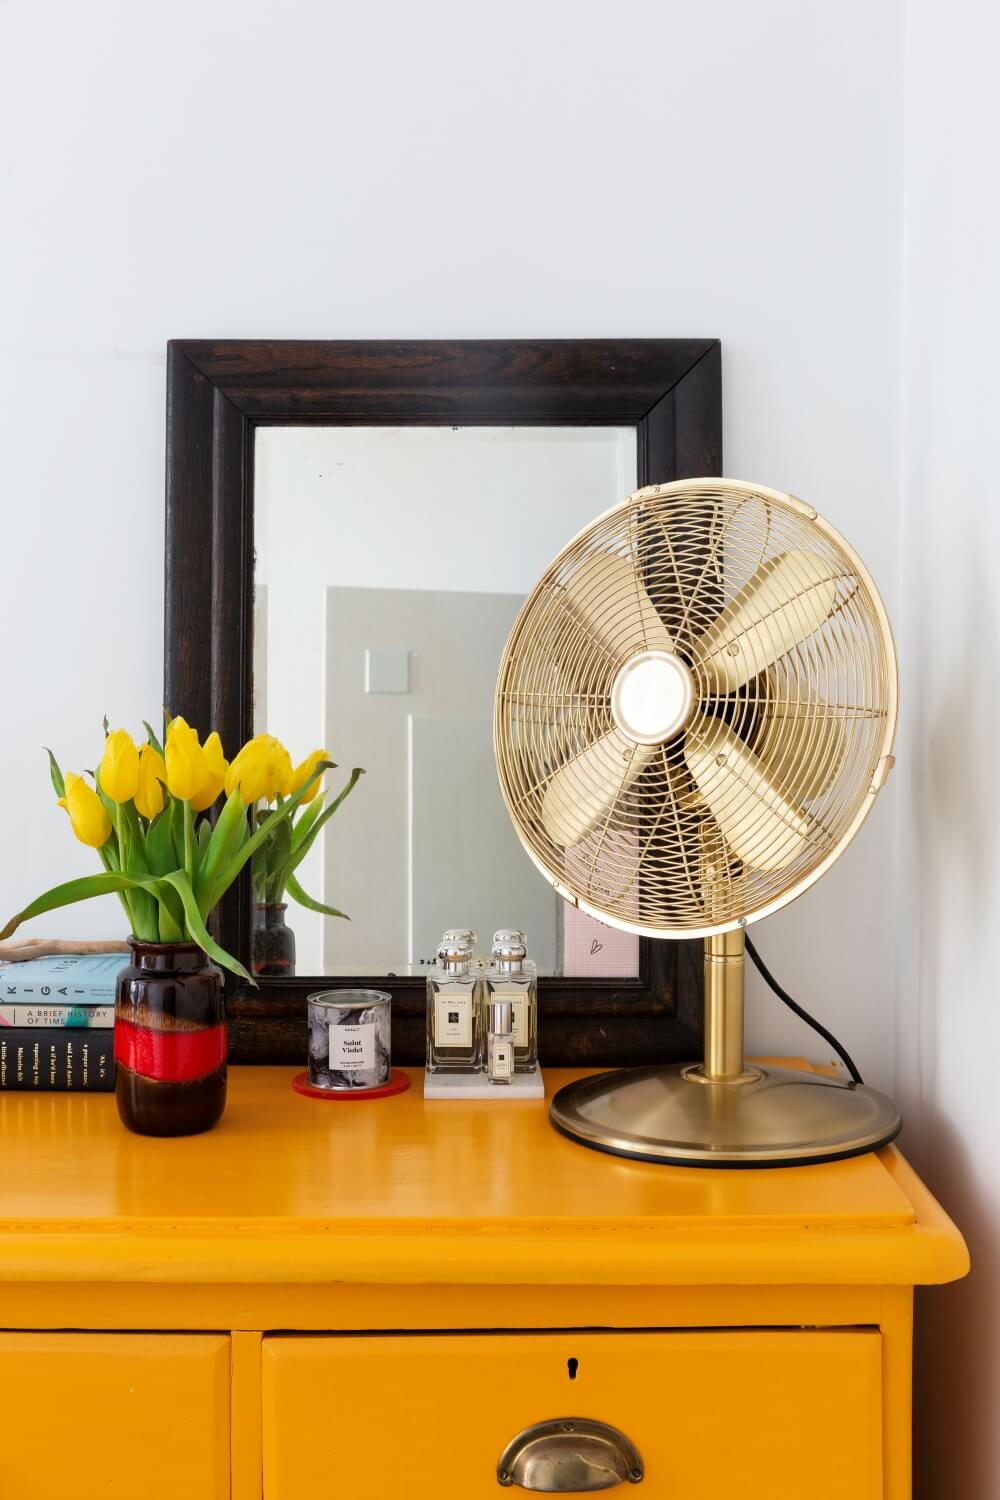 Vintage gold fan on top of the yellow painted chest of drawers